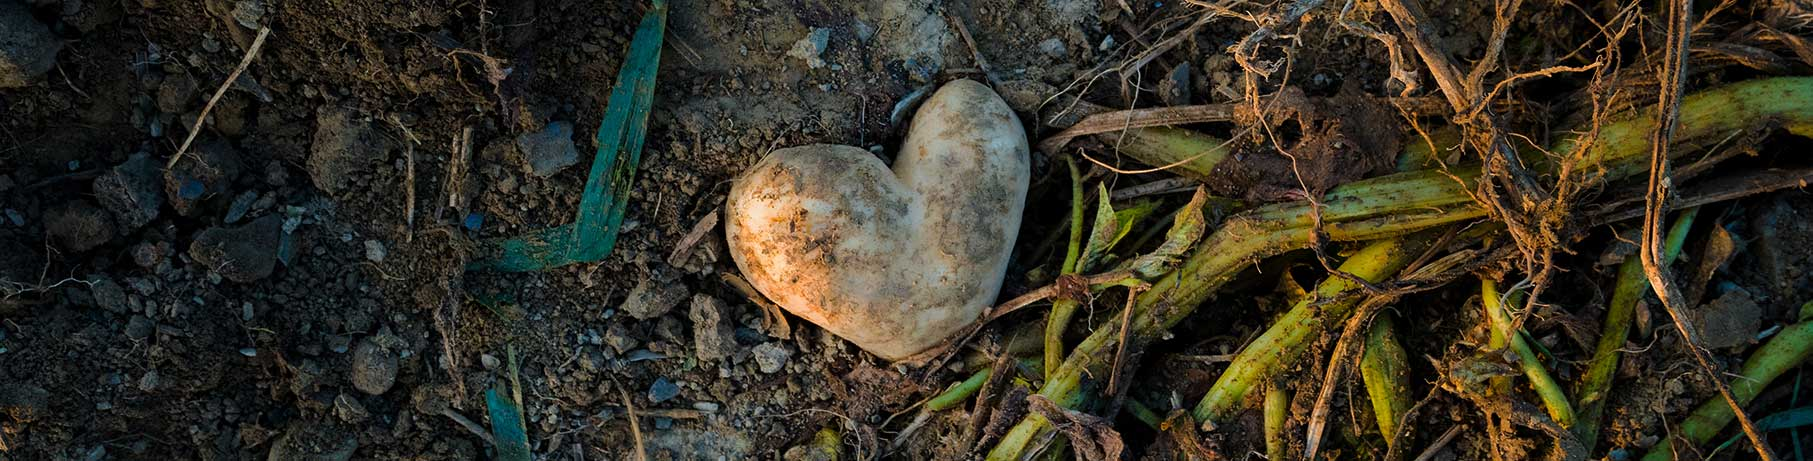 A heart shaped potato on a farmers field